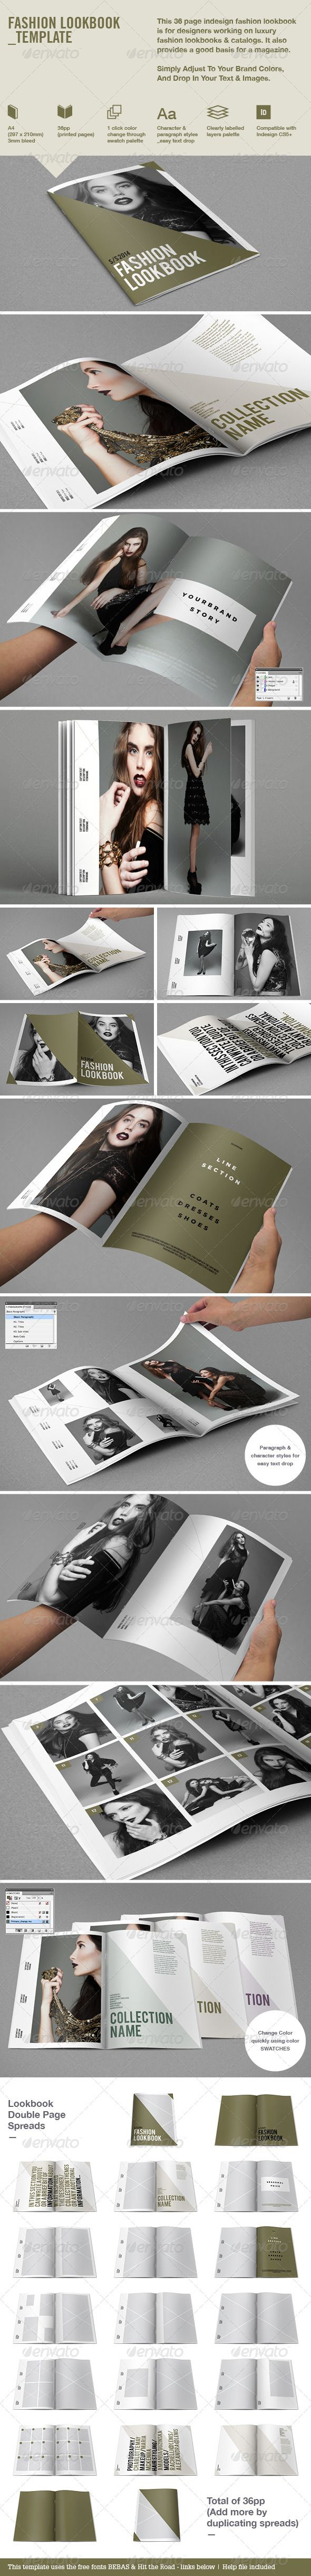 Fashion Lookbook - Nice Layout